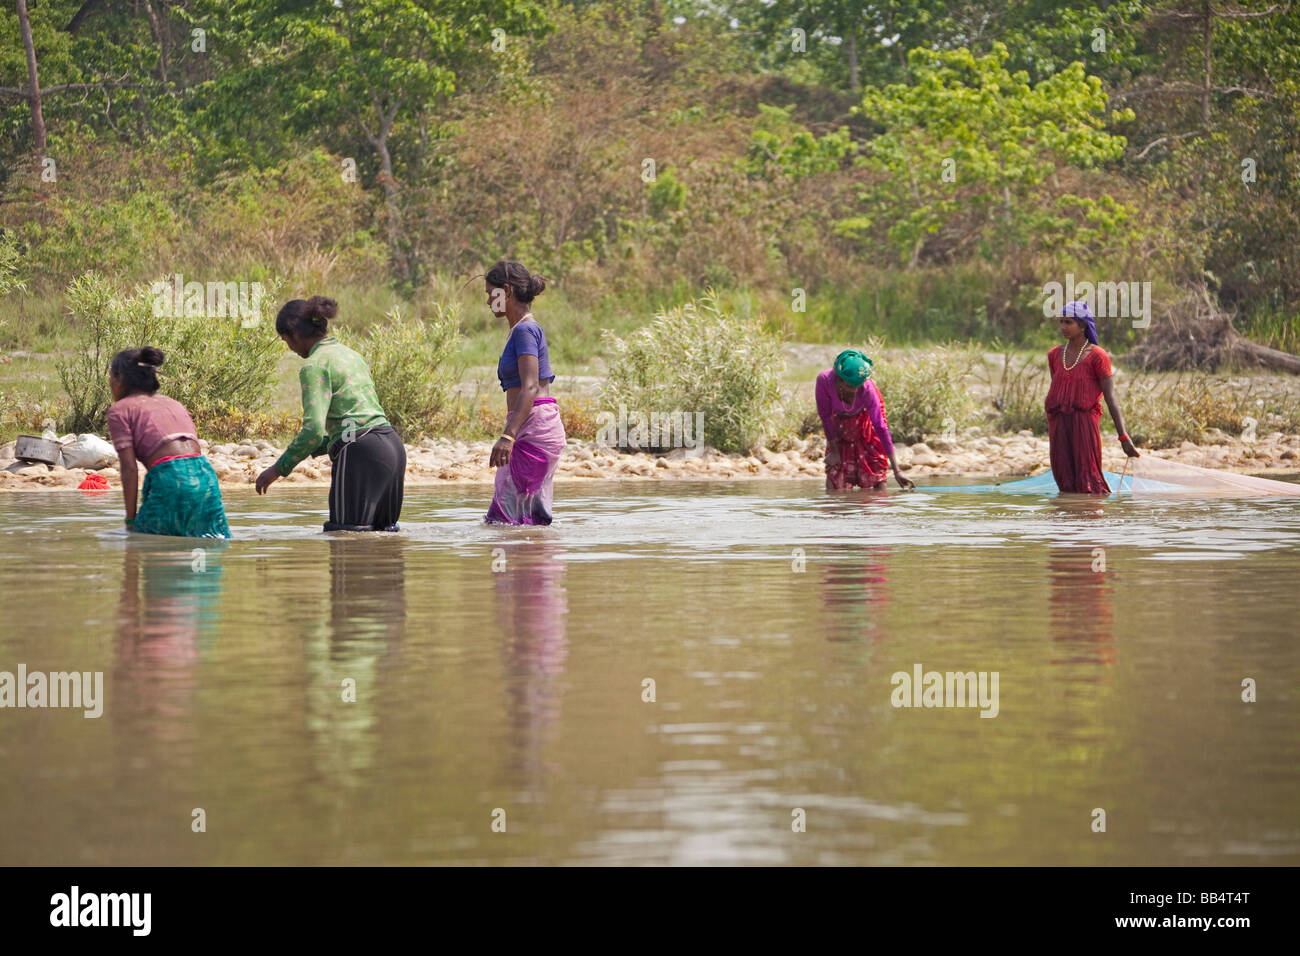 local Women fishing with net waste high in river water Chitwan